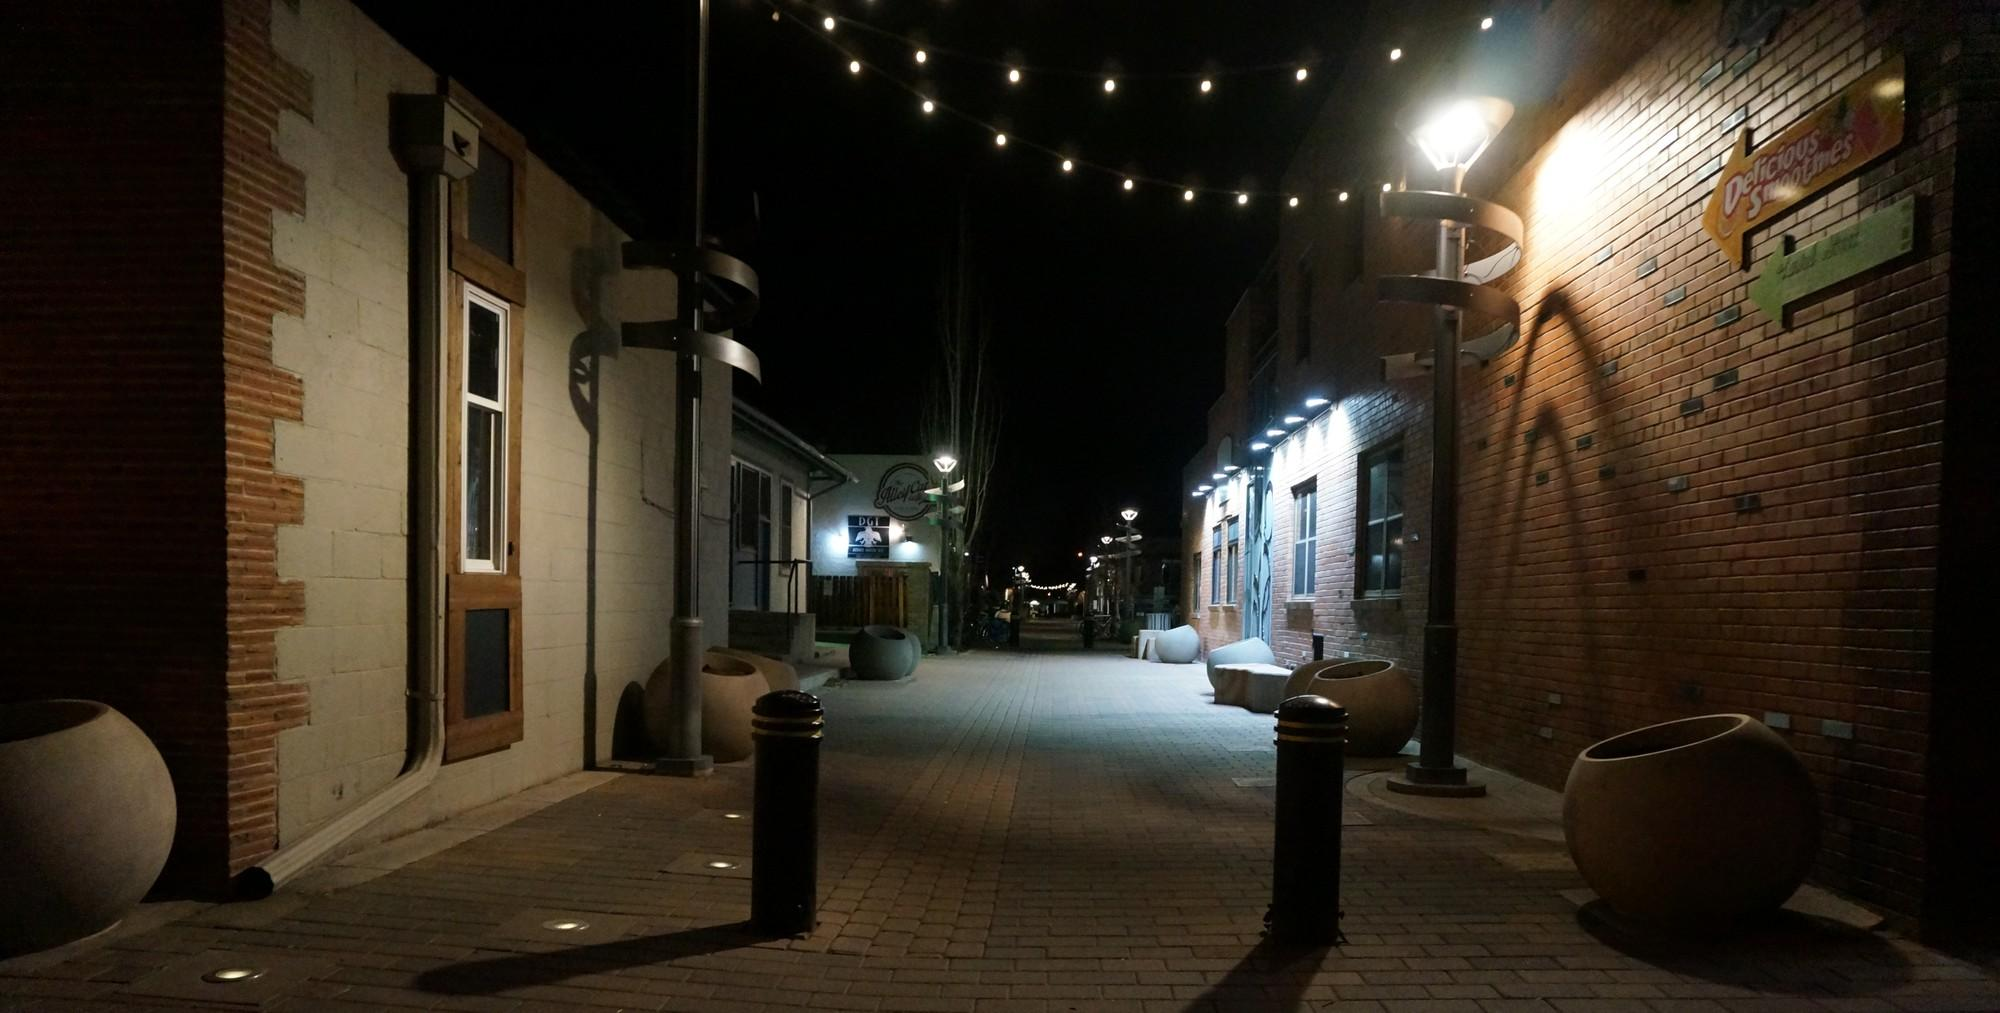 old town alley at night